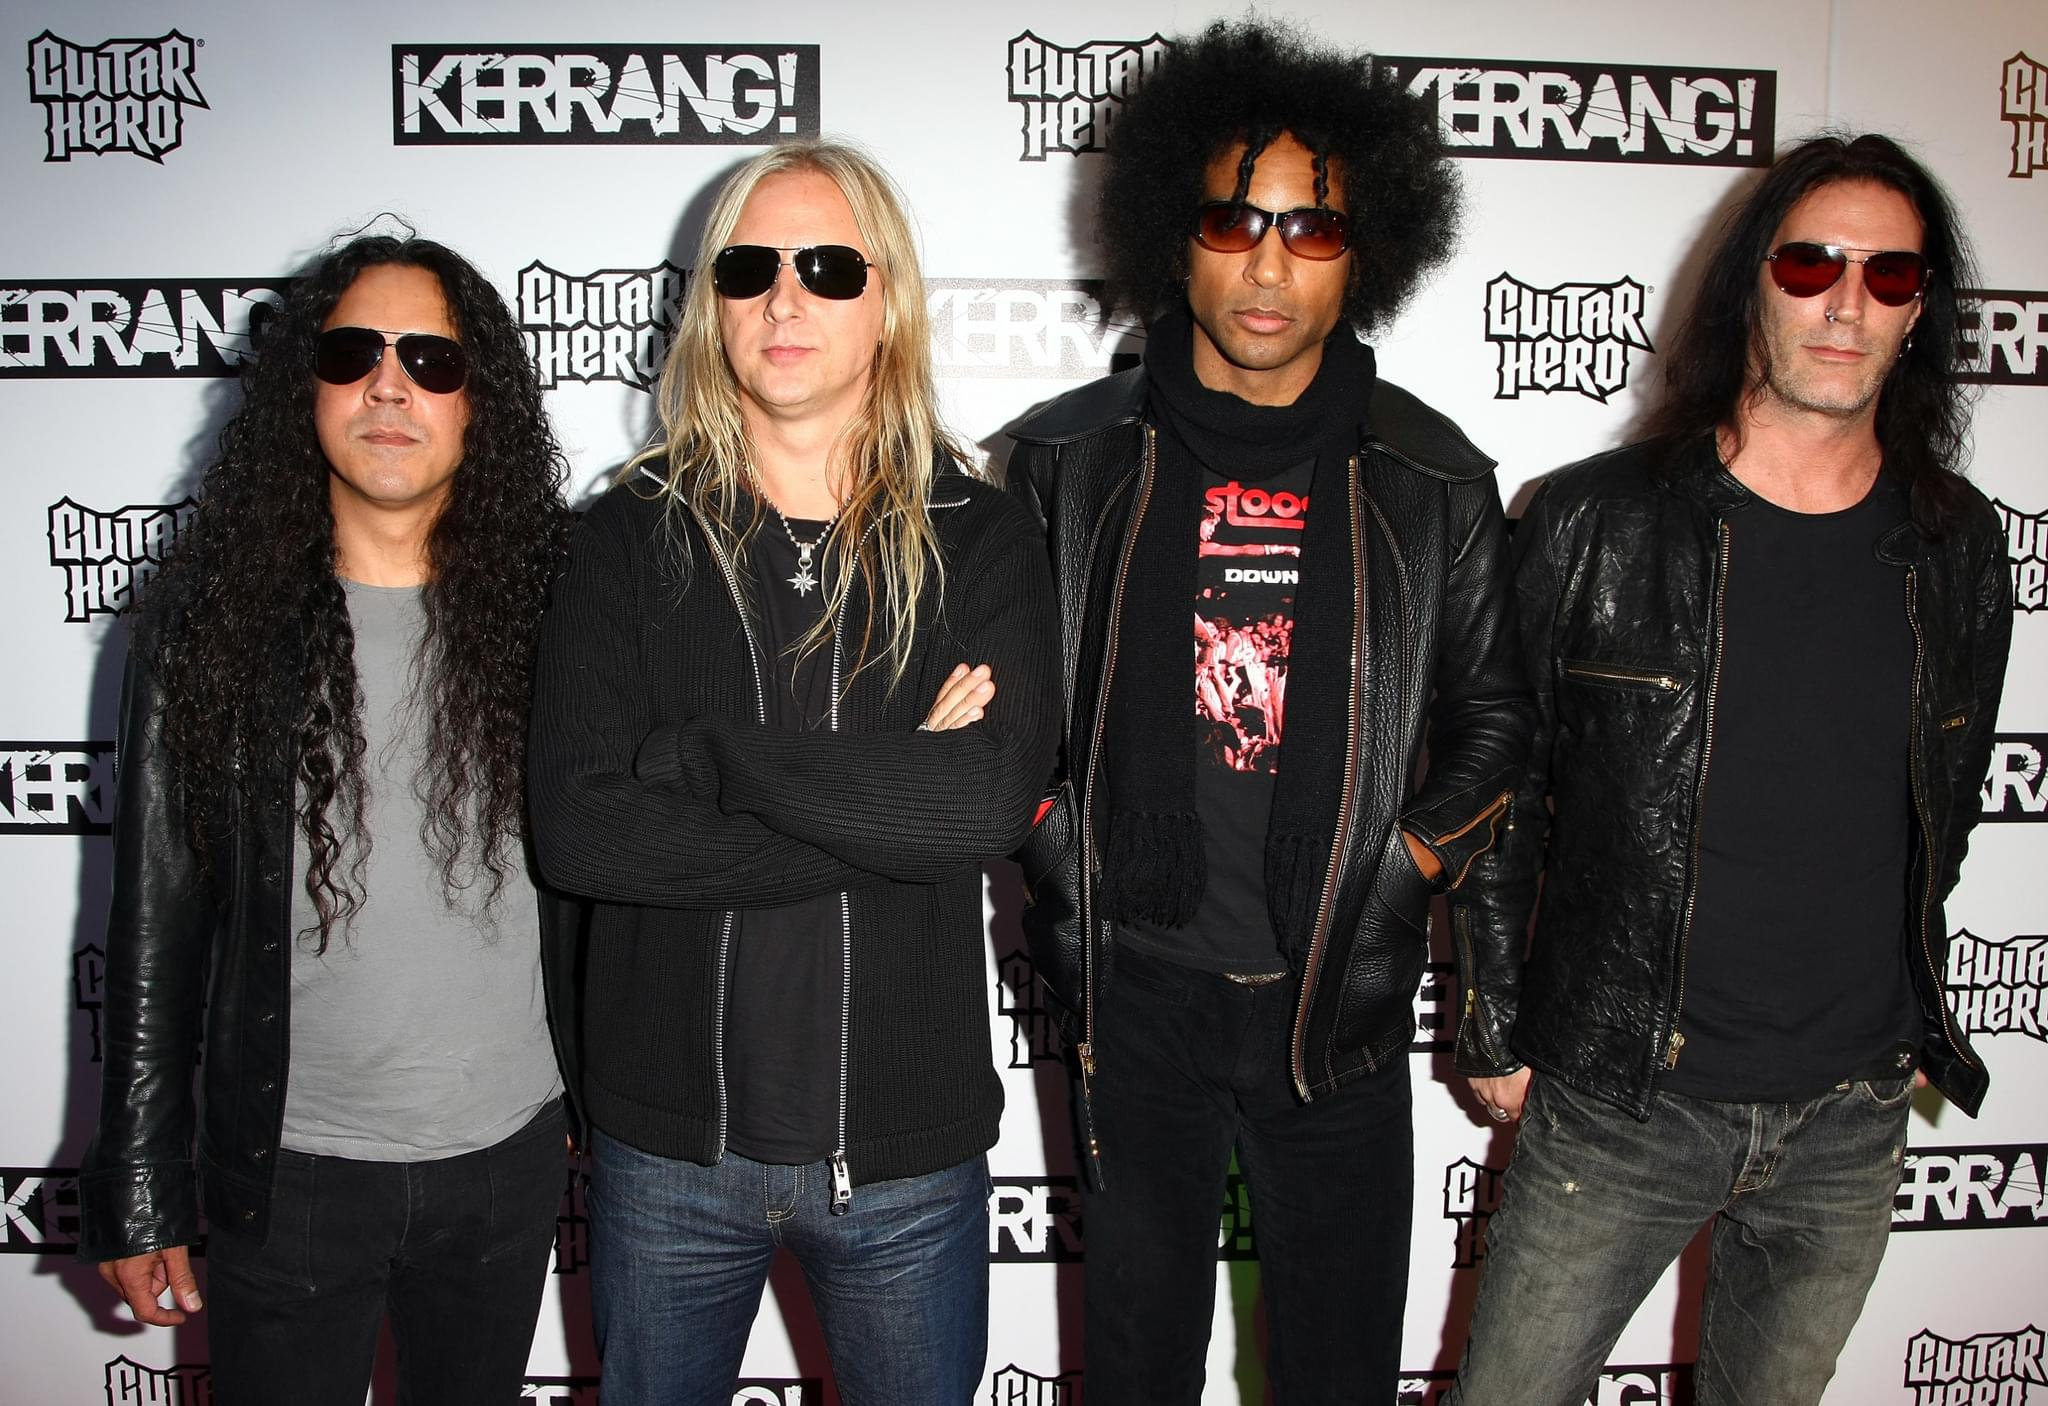 NEW! ALICE IN CHAINS ALBUM OUT IN AUGUST